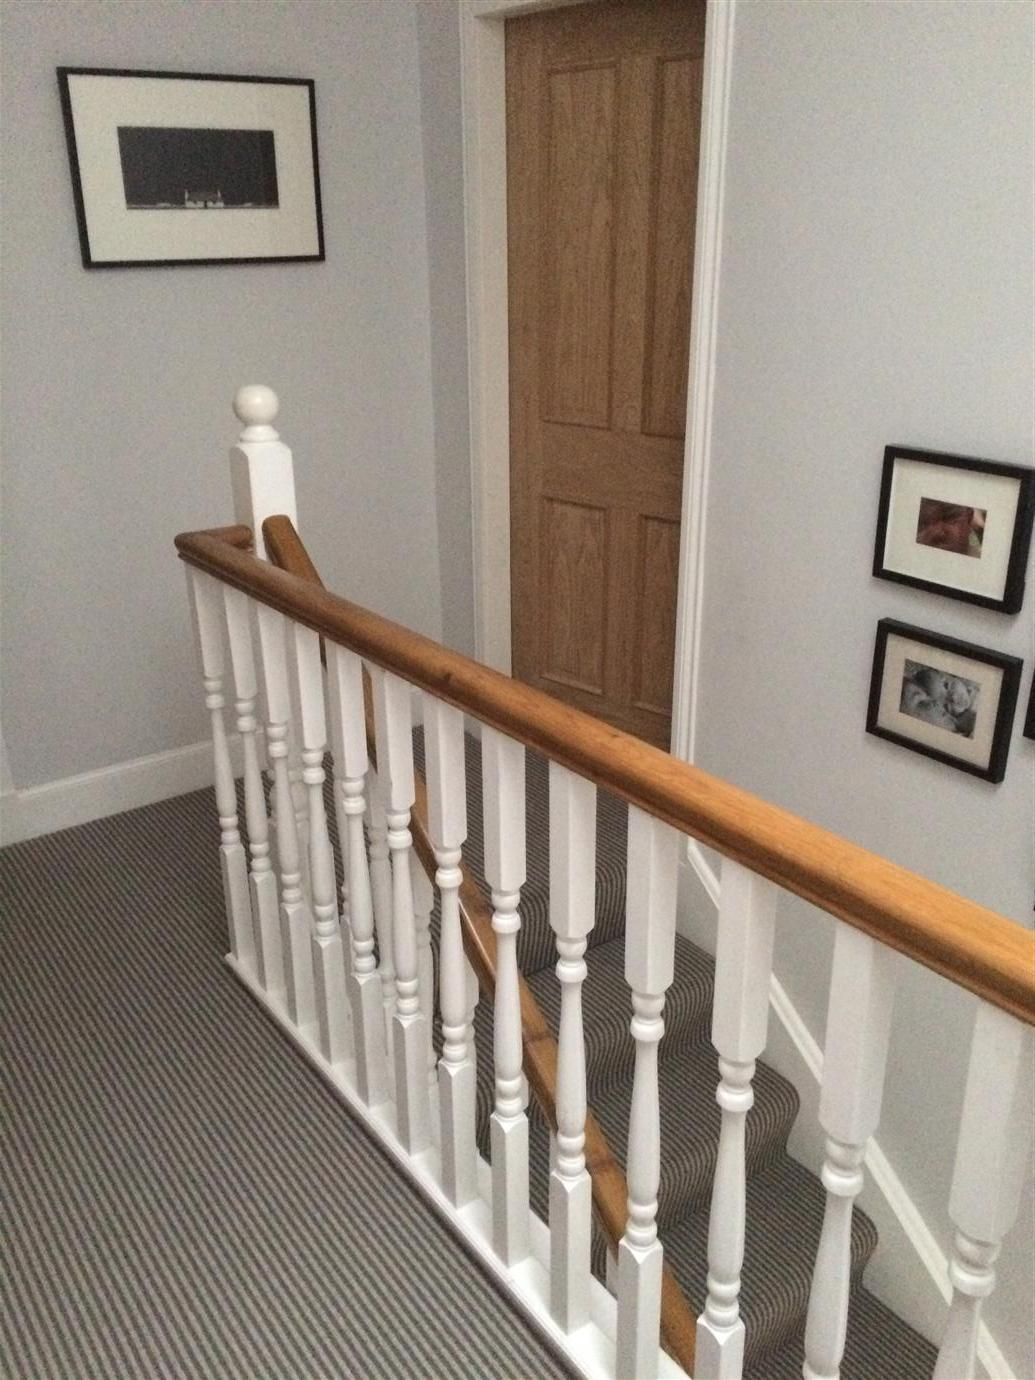 Best Farrow Ball Inspiration Ammonite Walls Staircase 400 x 300